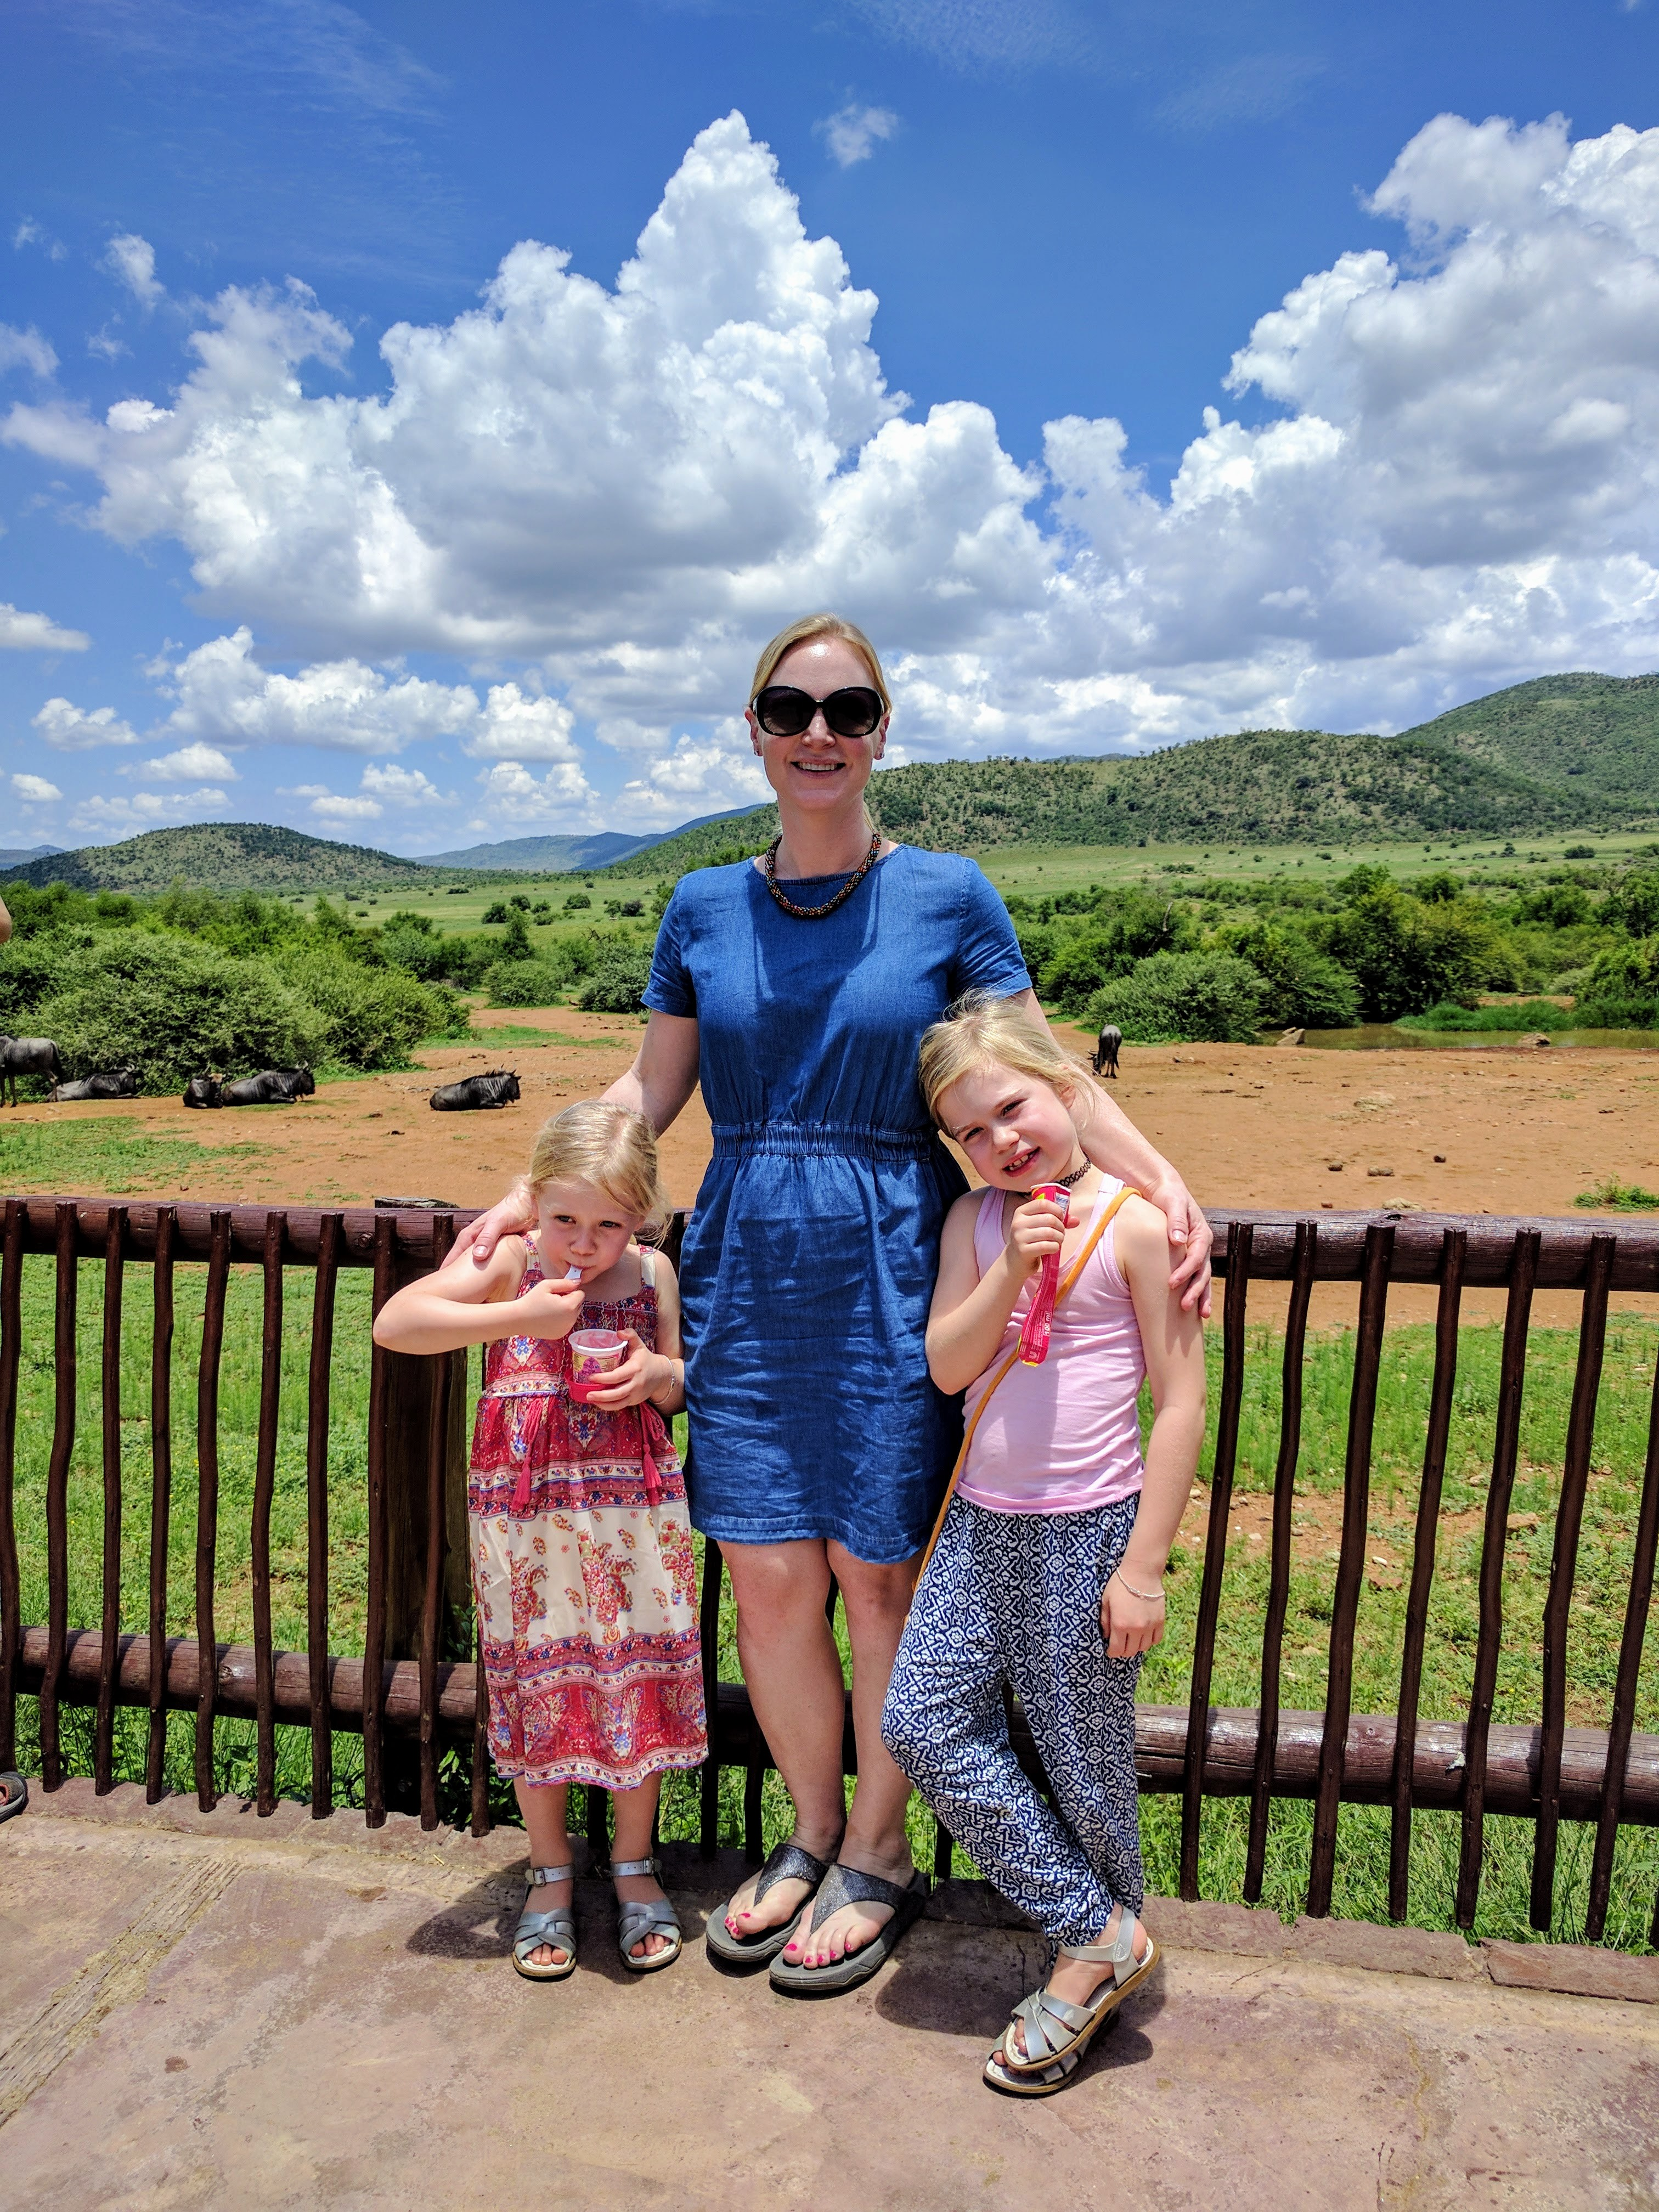 Family Friendly and Budget Friendly Safari In South Africa